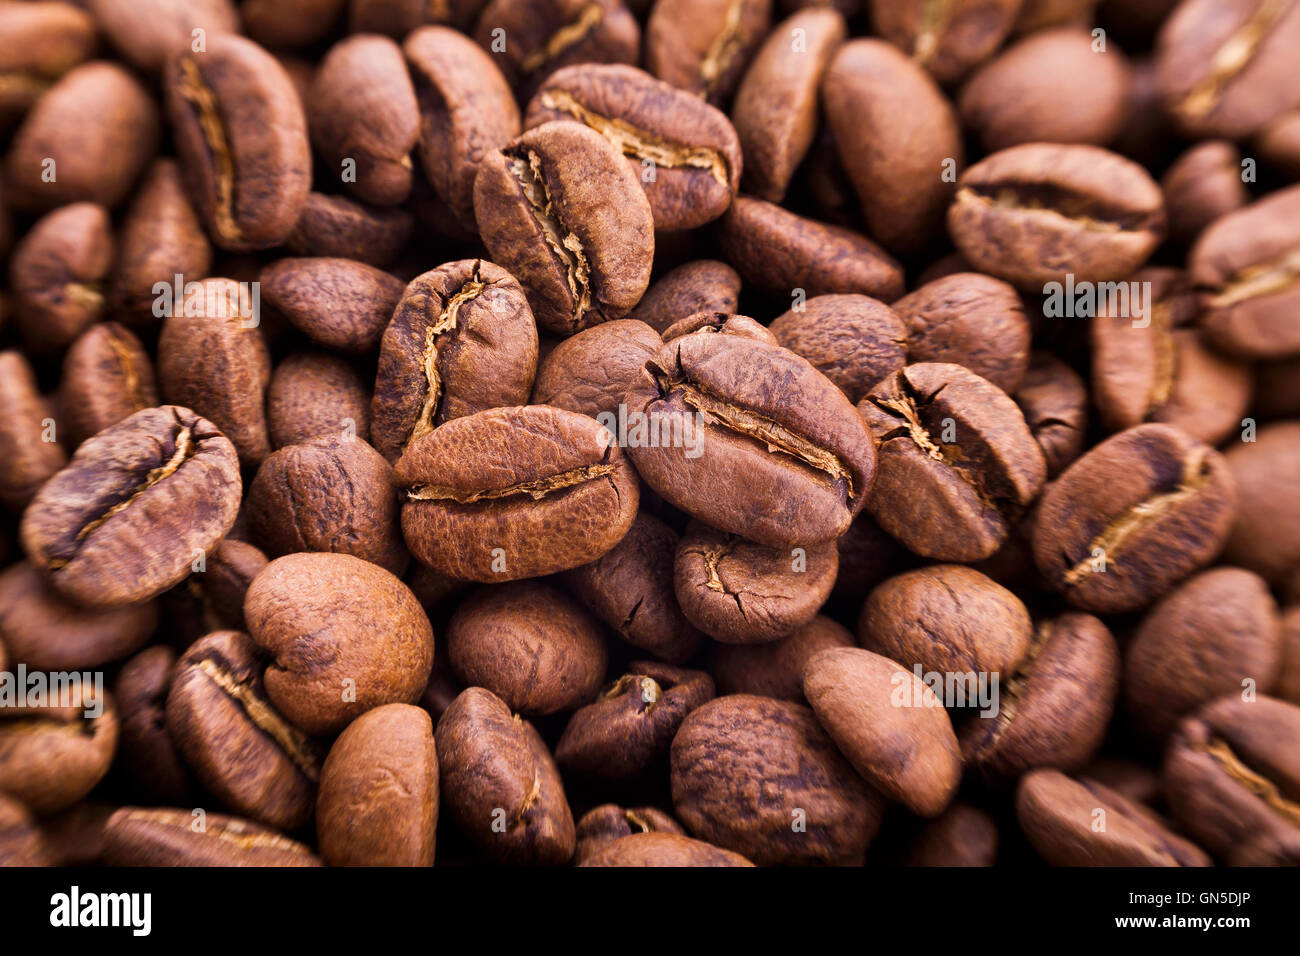 coffee beans closeup - Stock Image